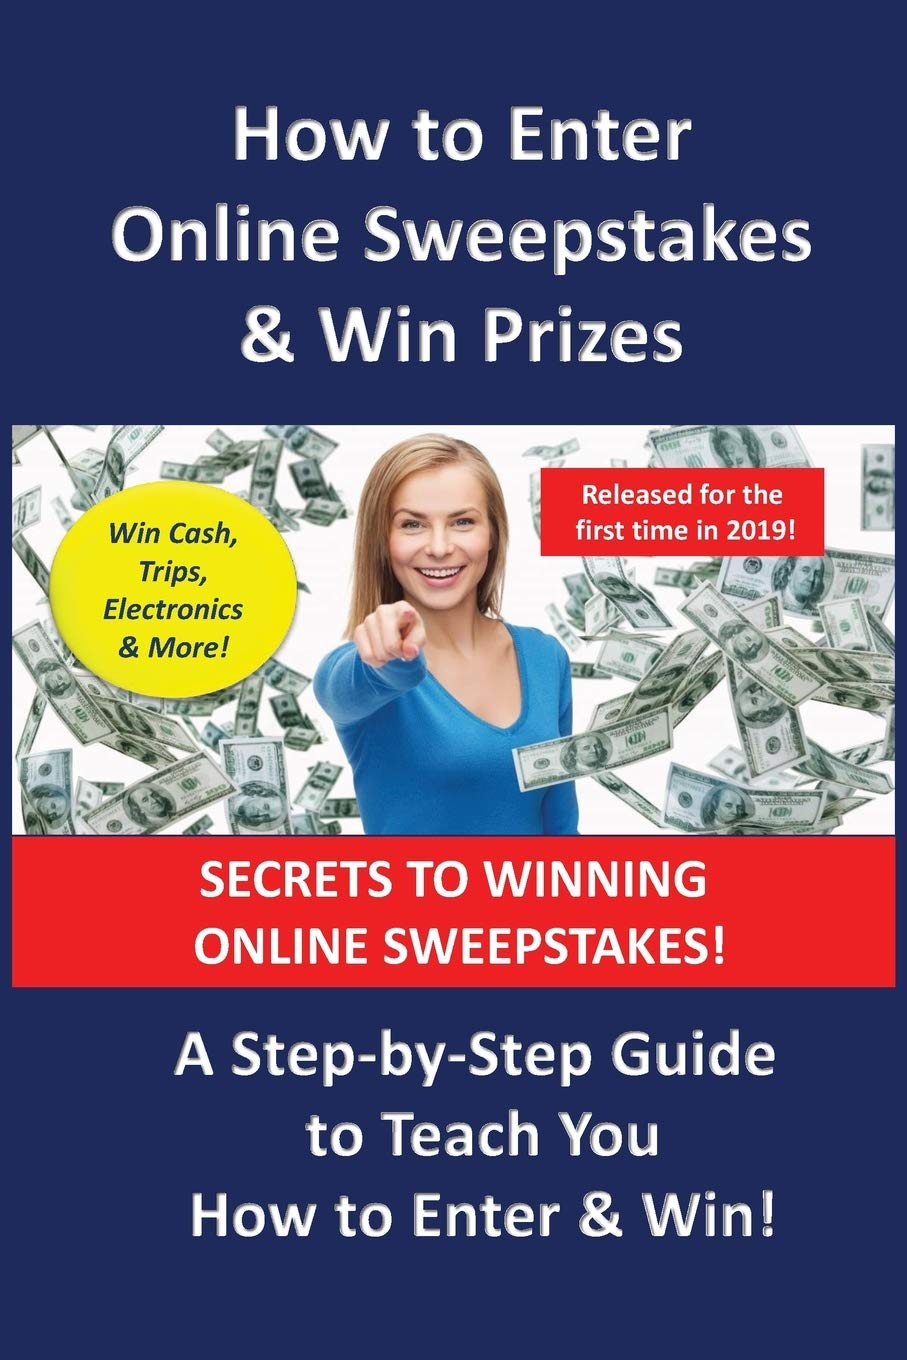 How To Enter Online Sweepstakes Win Prizes A Step By Step Guide To Teach You How To Enter Win How To Enter Sweepstakes Series Bailey J B 9781093821567 Amazon Com Books